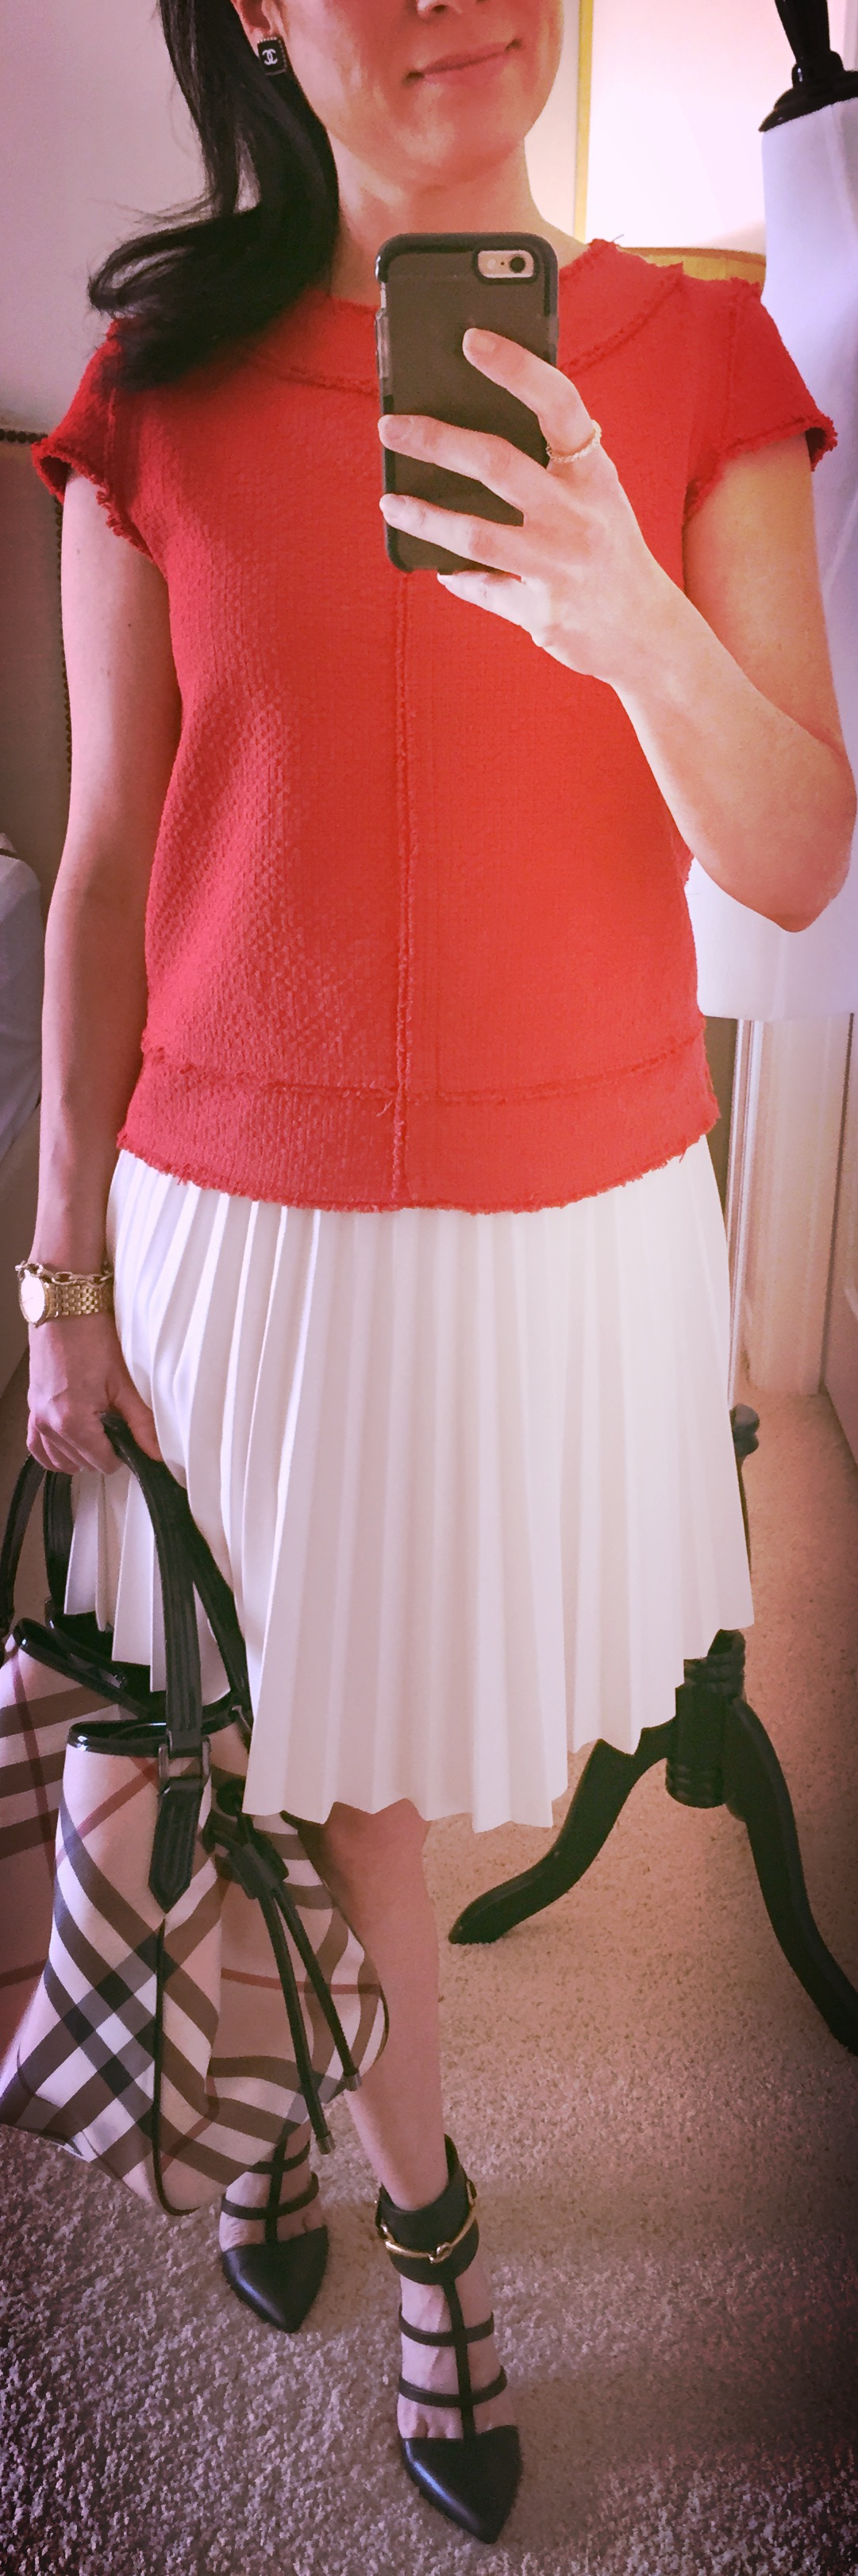 August 3, Faux Leather Pleated Skirt , Burberry Tote and Gucci Caged Heels